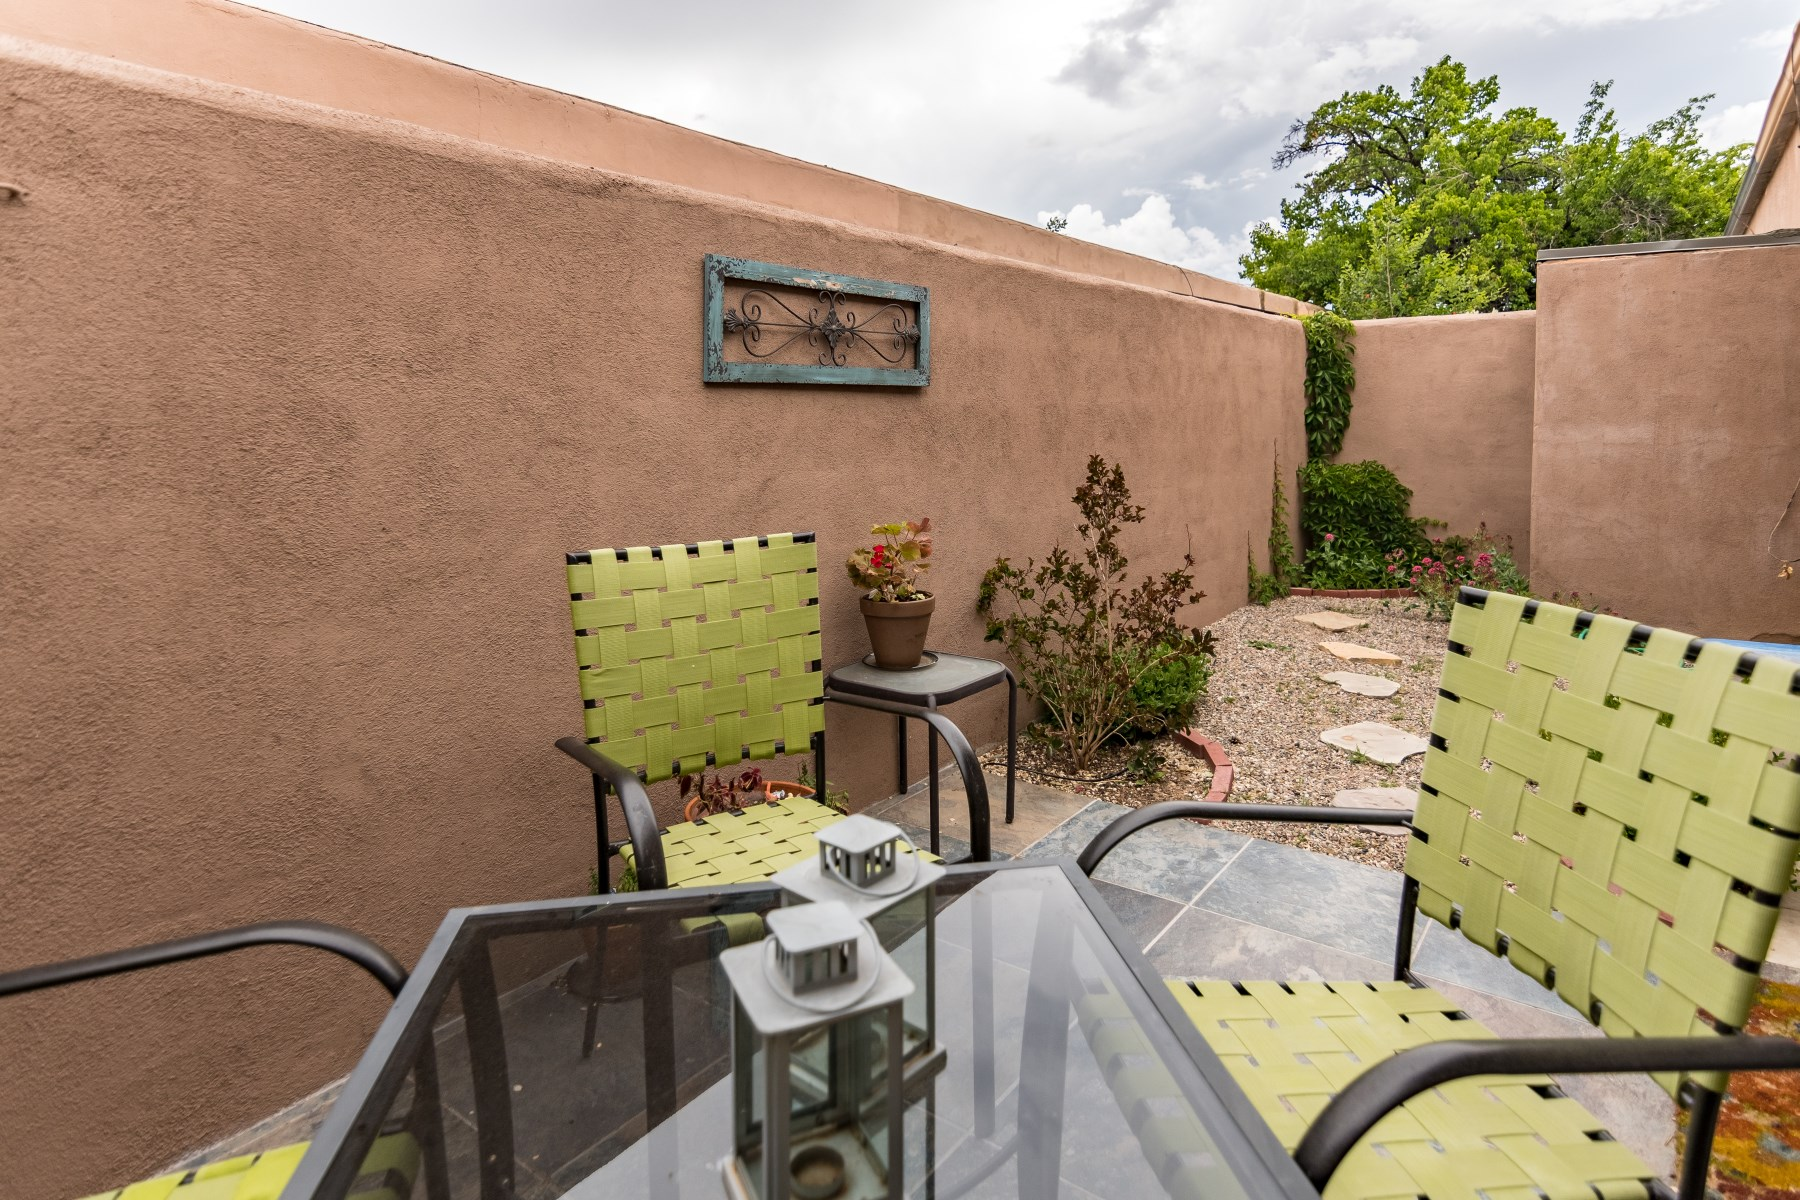 Additional photo for property listing at 1000 Marquez Place, C-6  Santa Fe, New Mexico 87505 United States